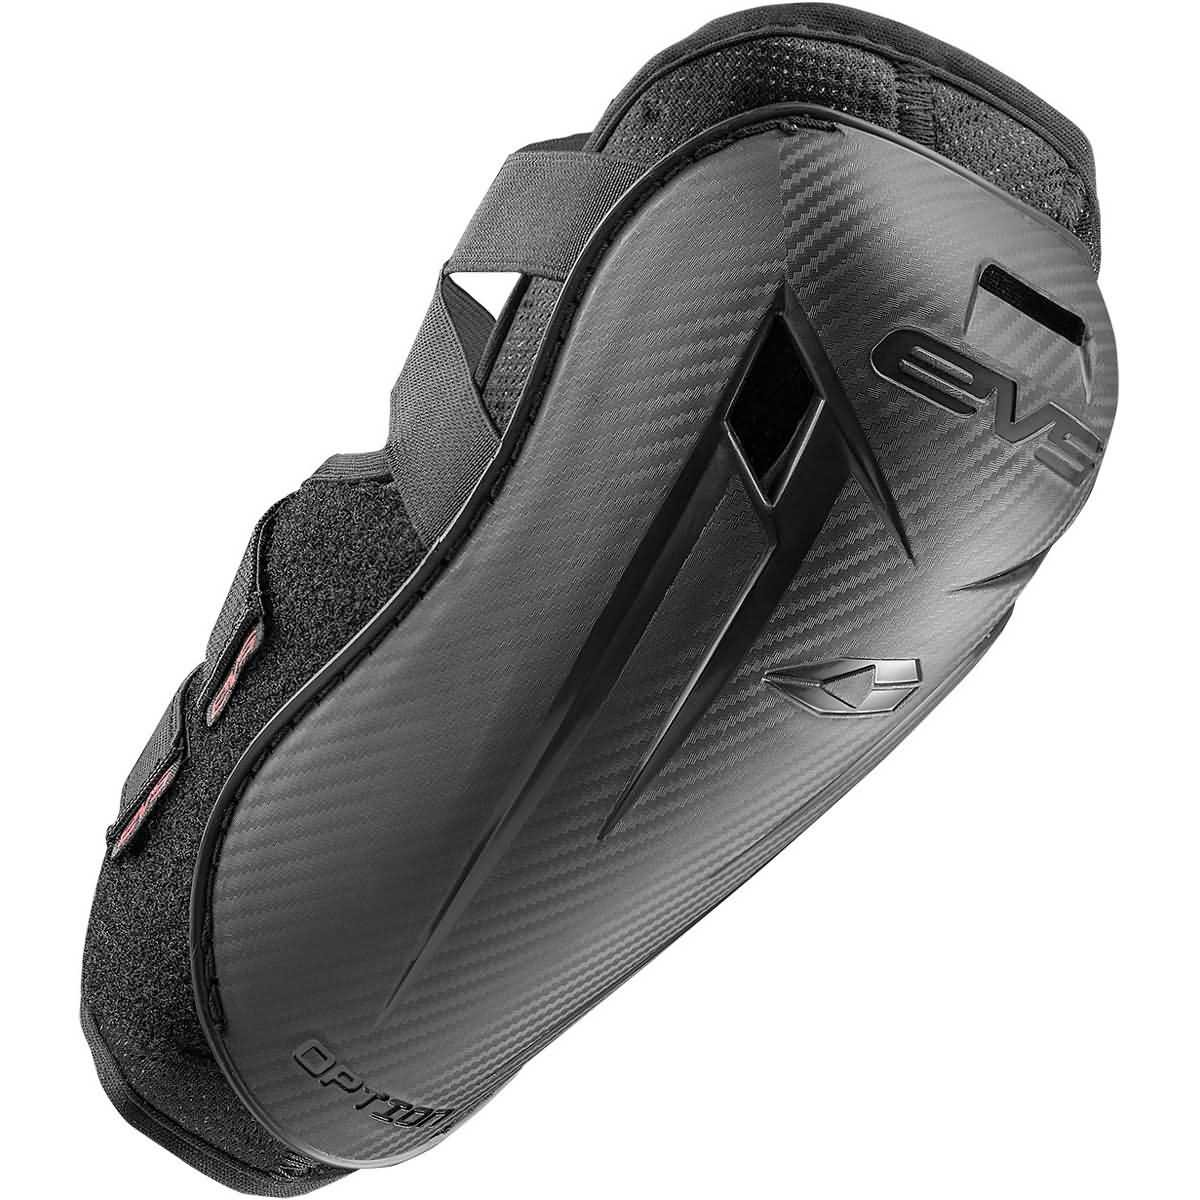 EVS 2016 Option Adult Elbow Guard Off-Road Motorcycle Body Armor - Black/One Size by EVS Sports